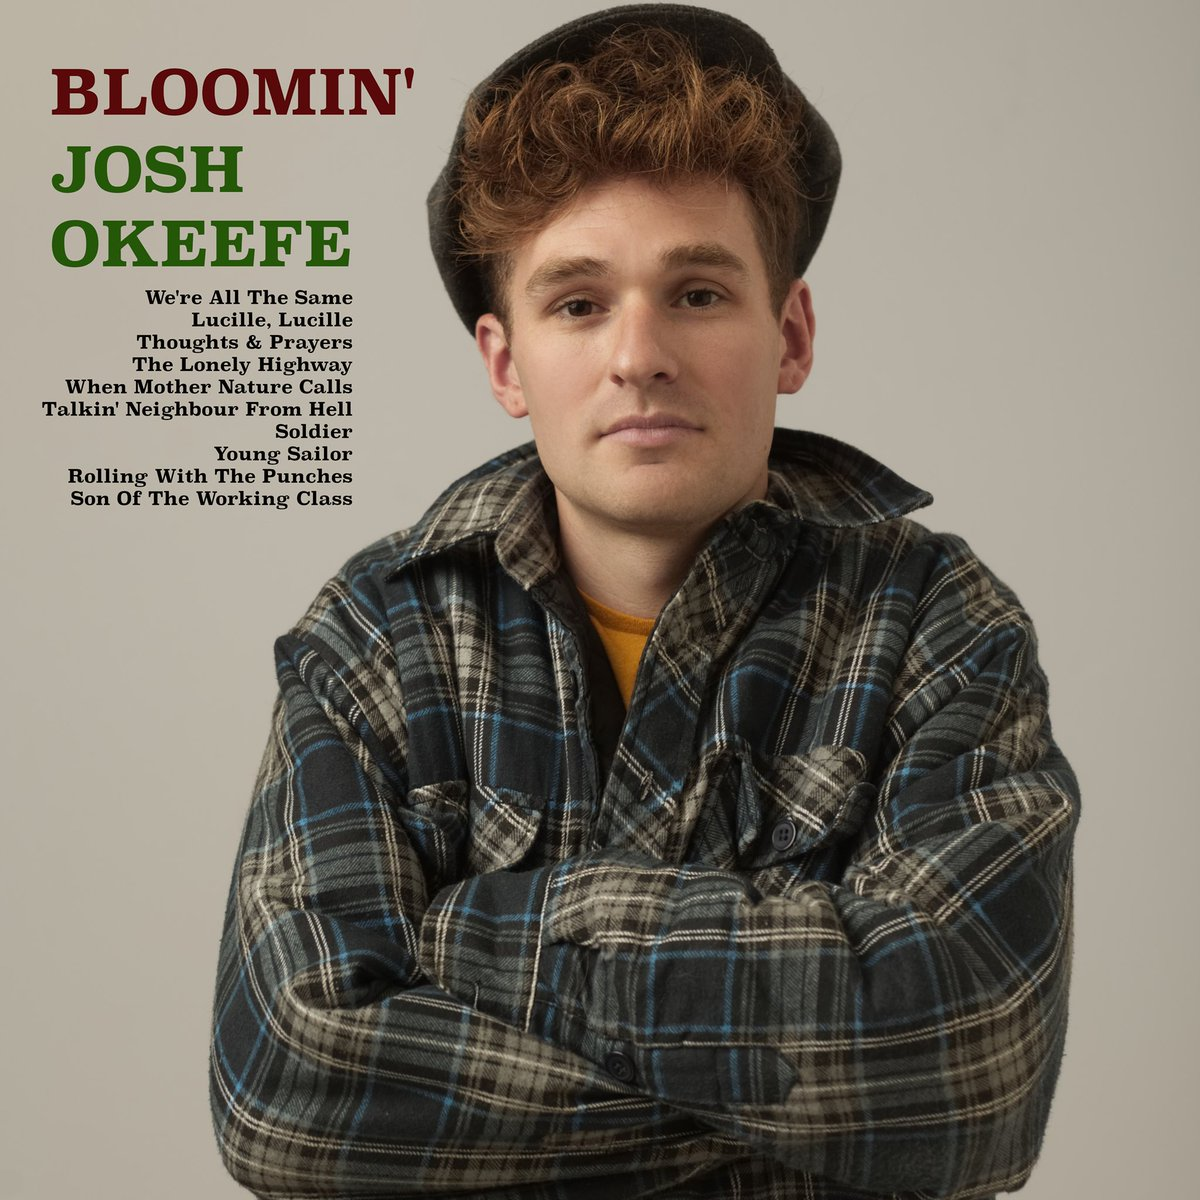 POW MUSIC REVIEW: Check out Isabella Moulton music review of @joshokeefemusic New Album Bloomin'  https://t.co/SsAZC2lWaD https://t.co/TkudwpAg1b